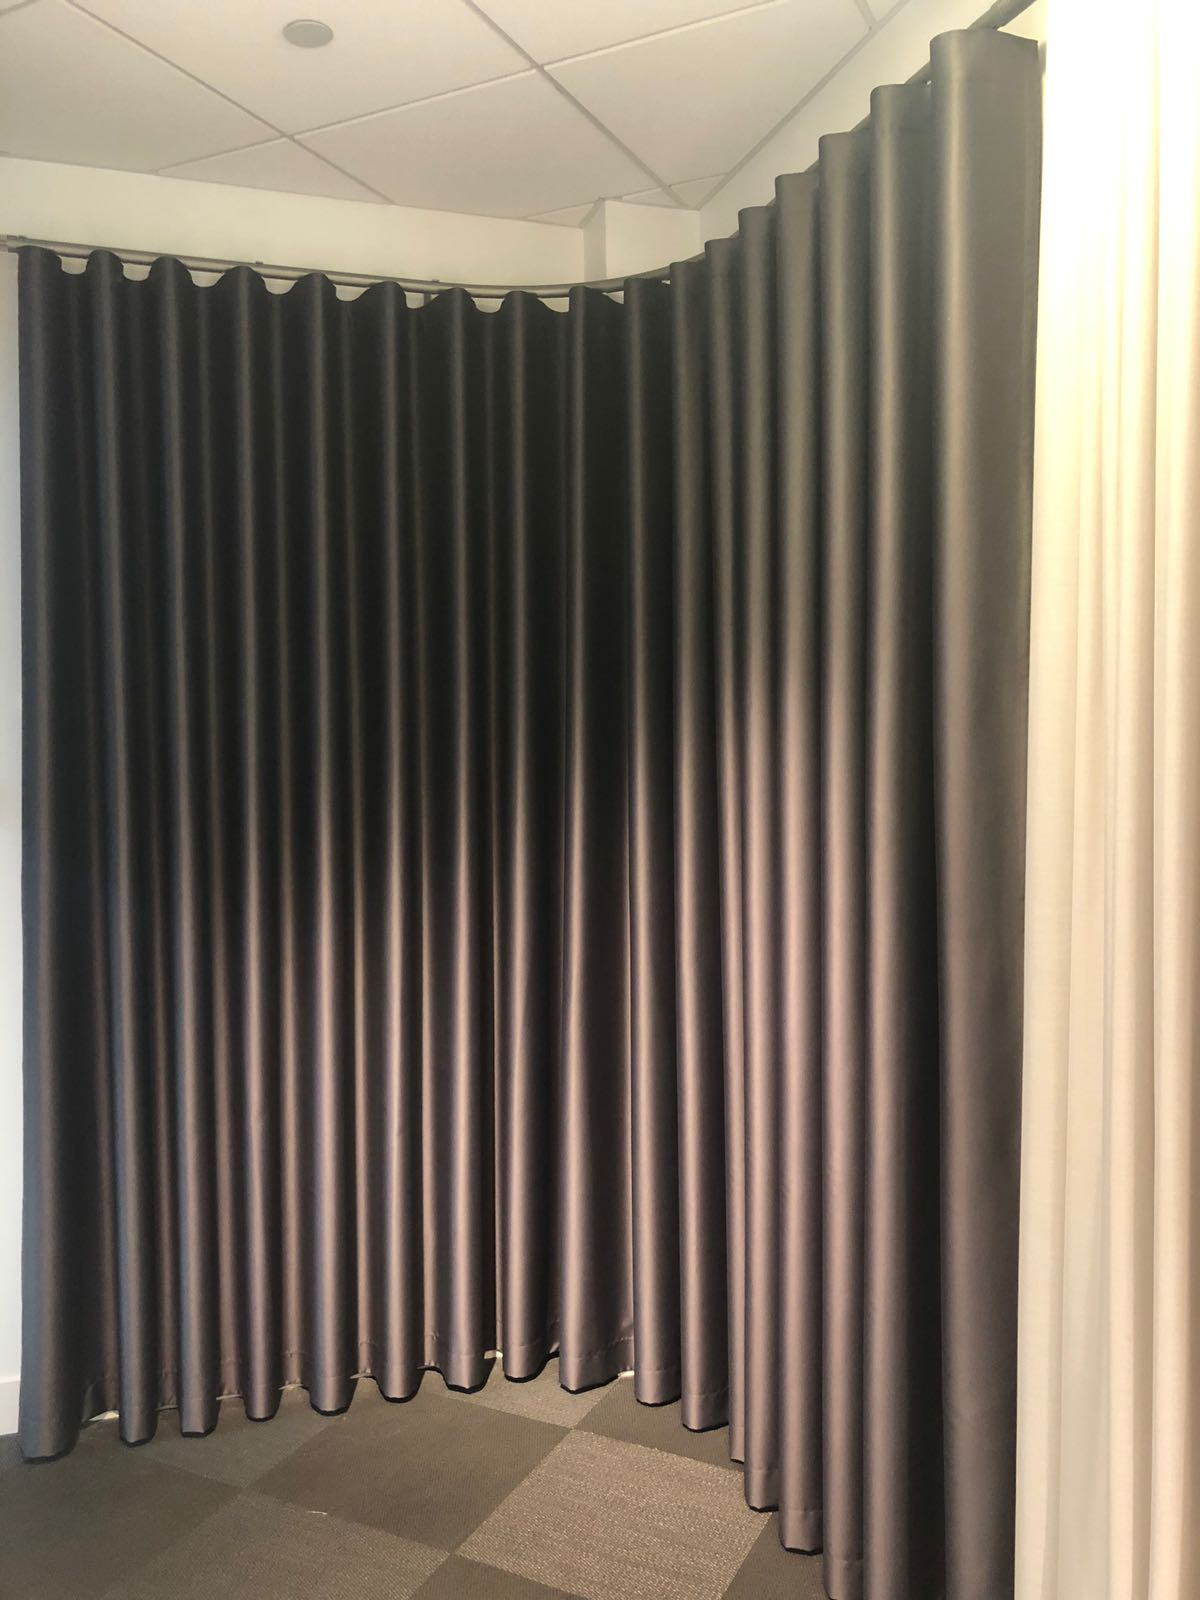 Silent Gliss Business Centre London - Curtain